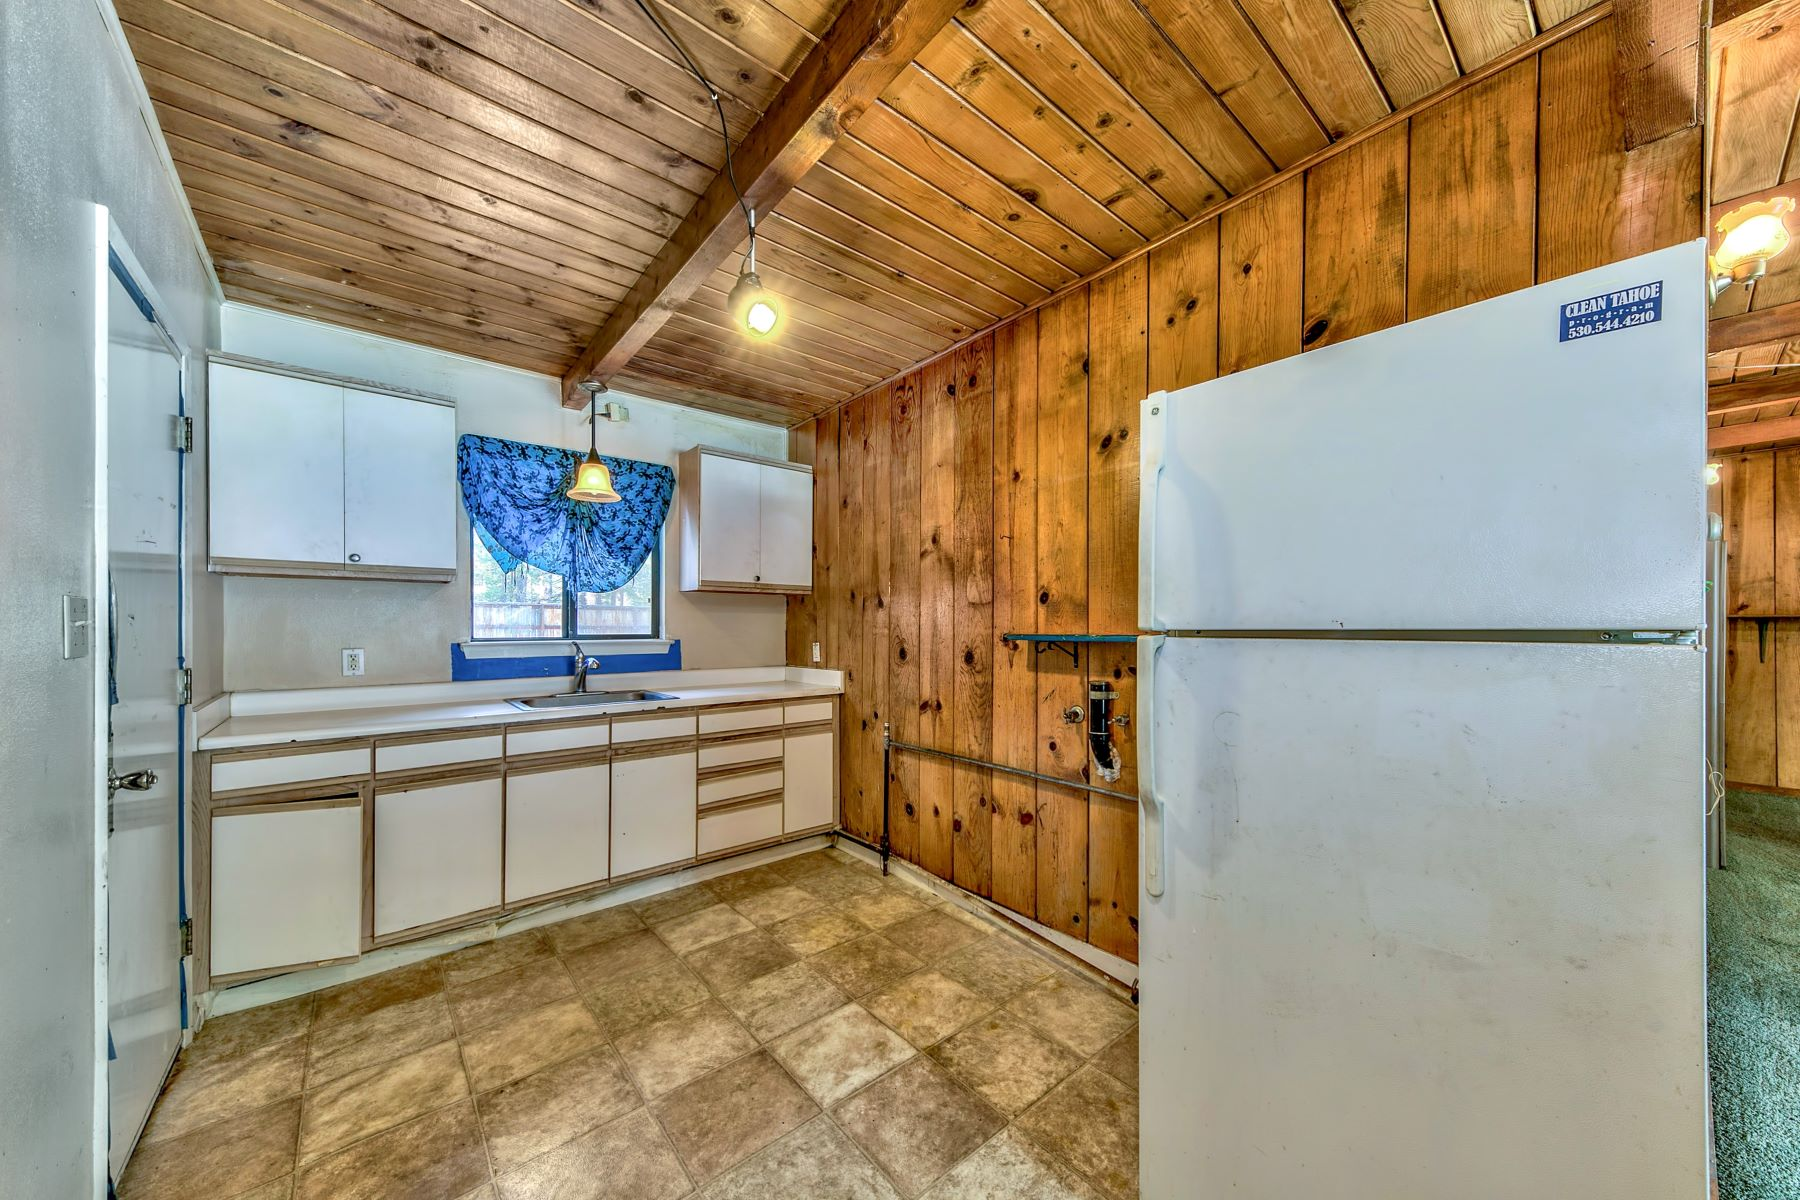 Additional photo for property listing at 1140 3rd Street, South Lake Tahoe, CA 96150 1140 3rd Street South Lake Tahoe, California 96150 United States